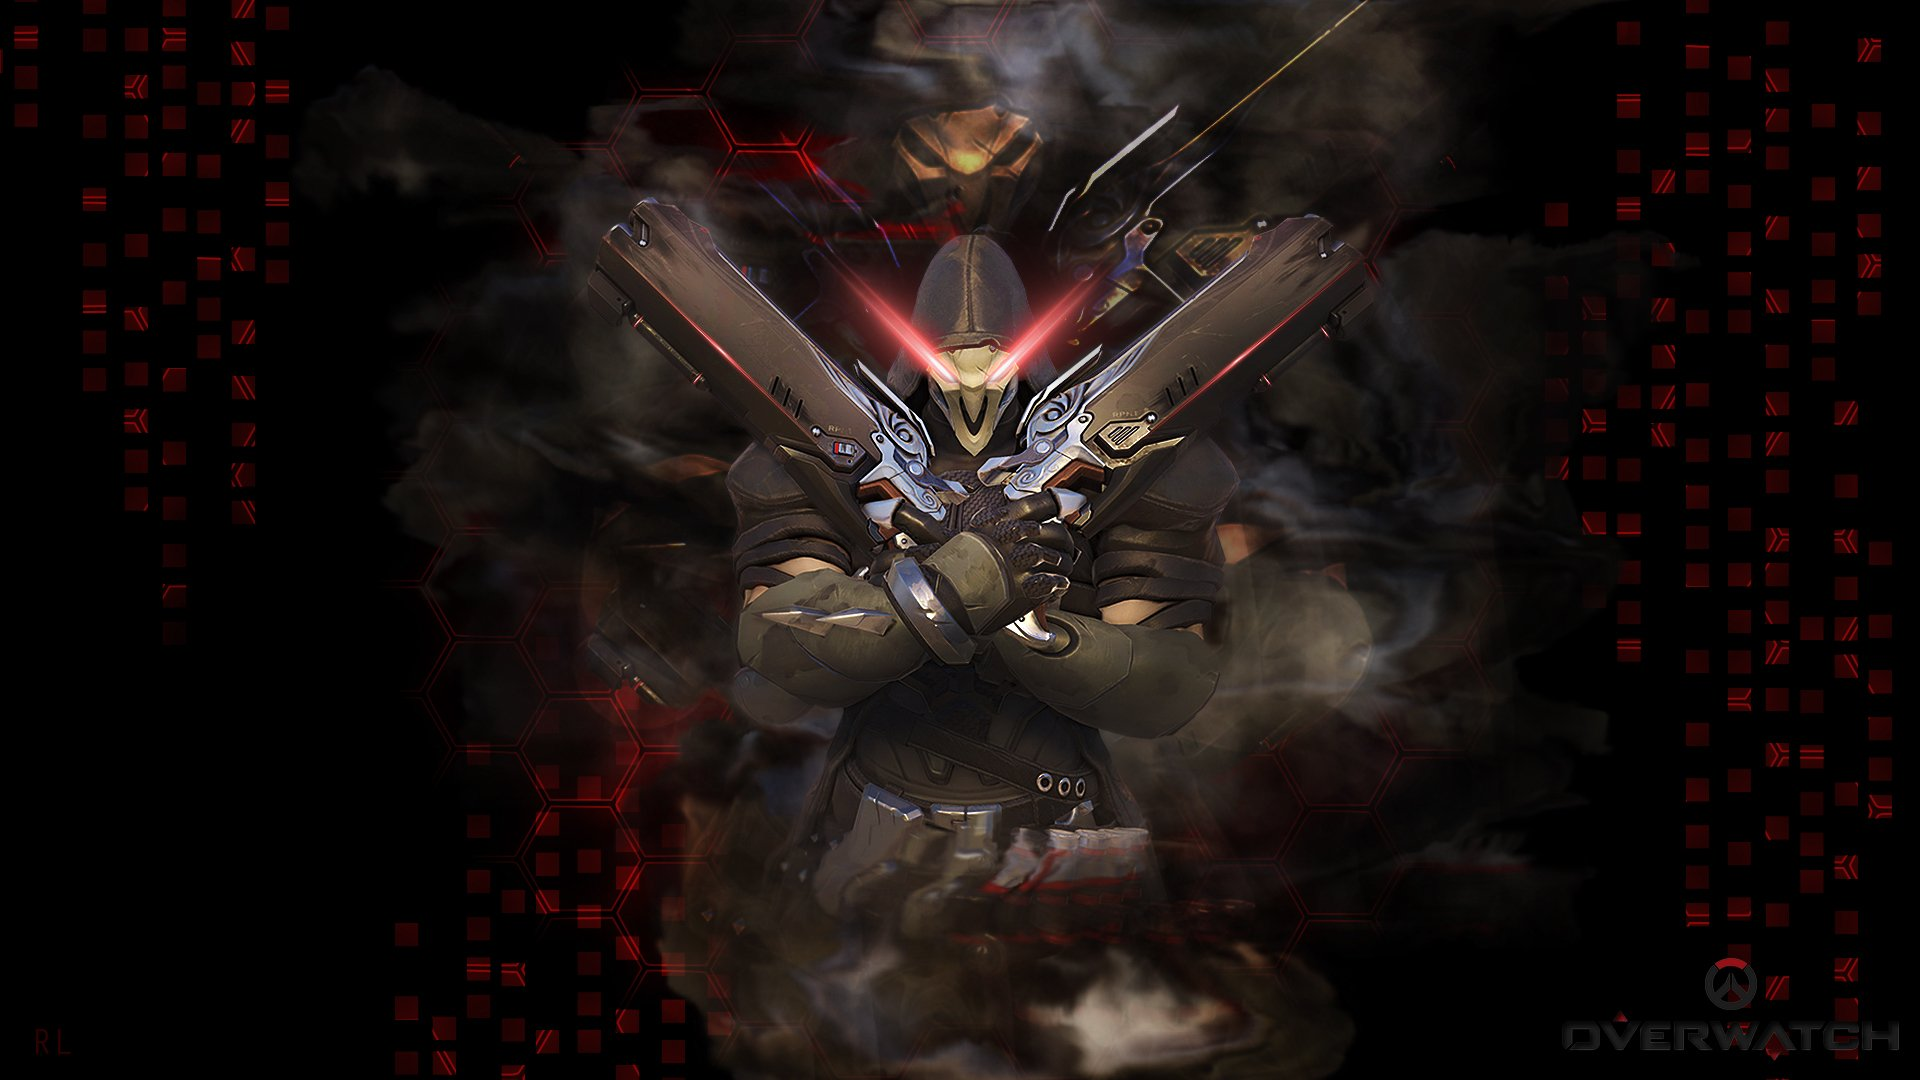 Overwatch 1080p clipart picture 108 Reaper (Overwatch) HD Wallpapers | Backgrounds - Wallpaper Abyss picture